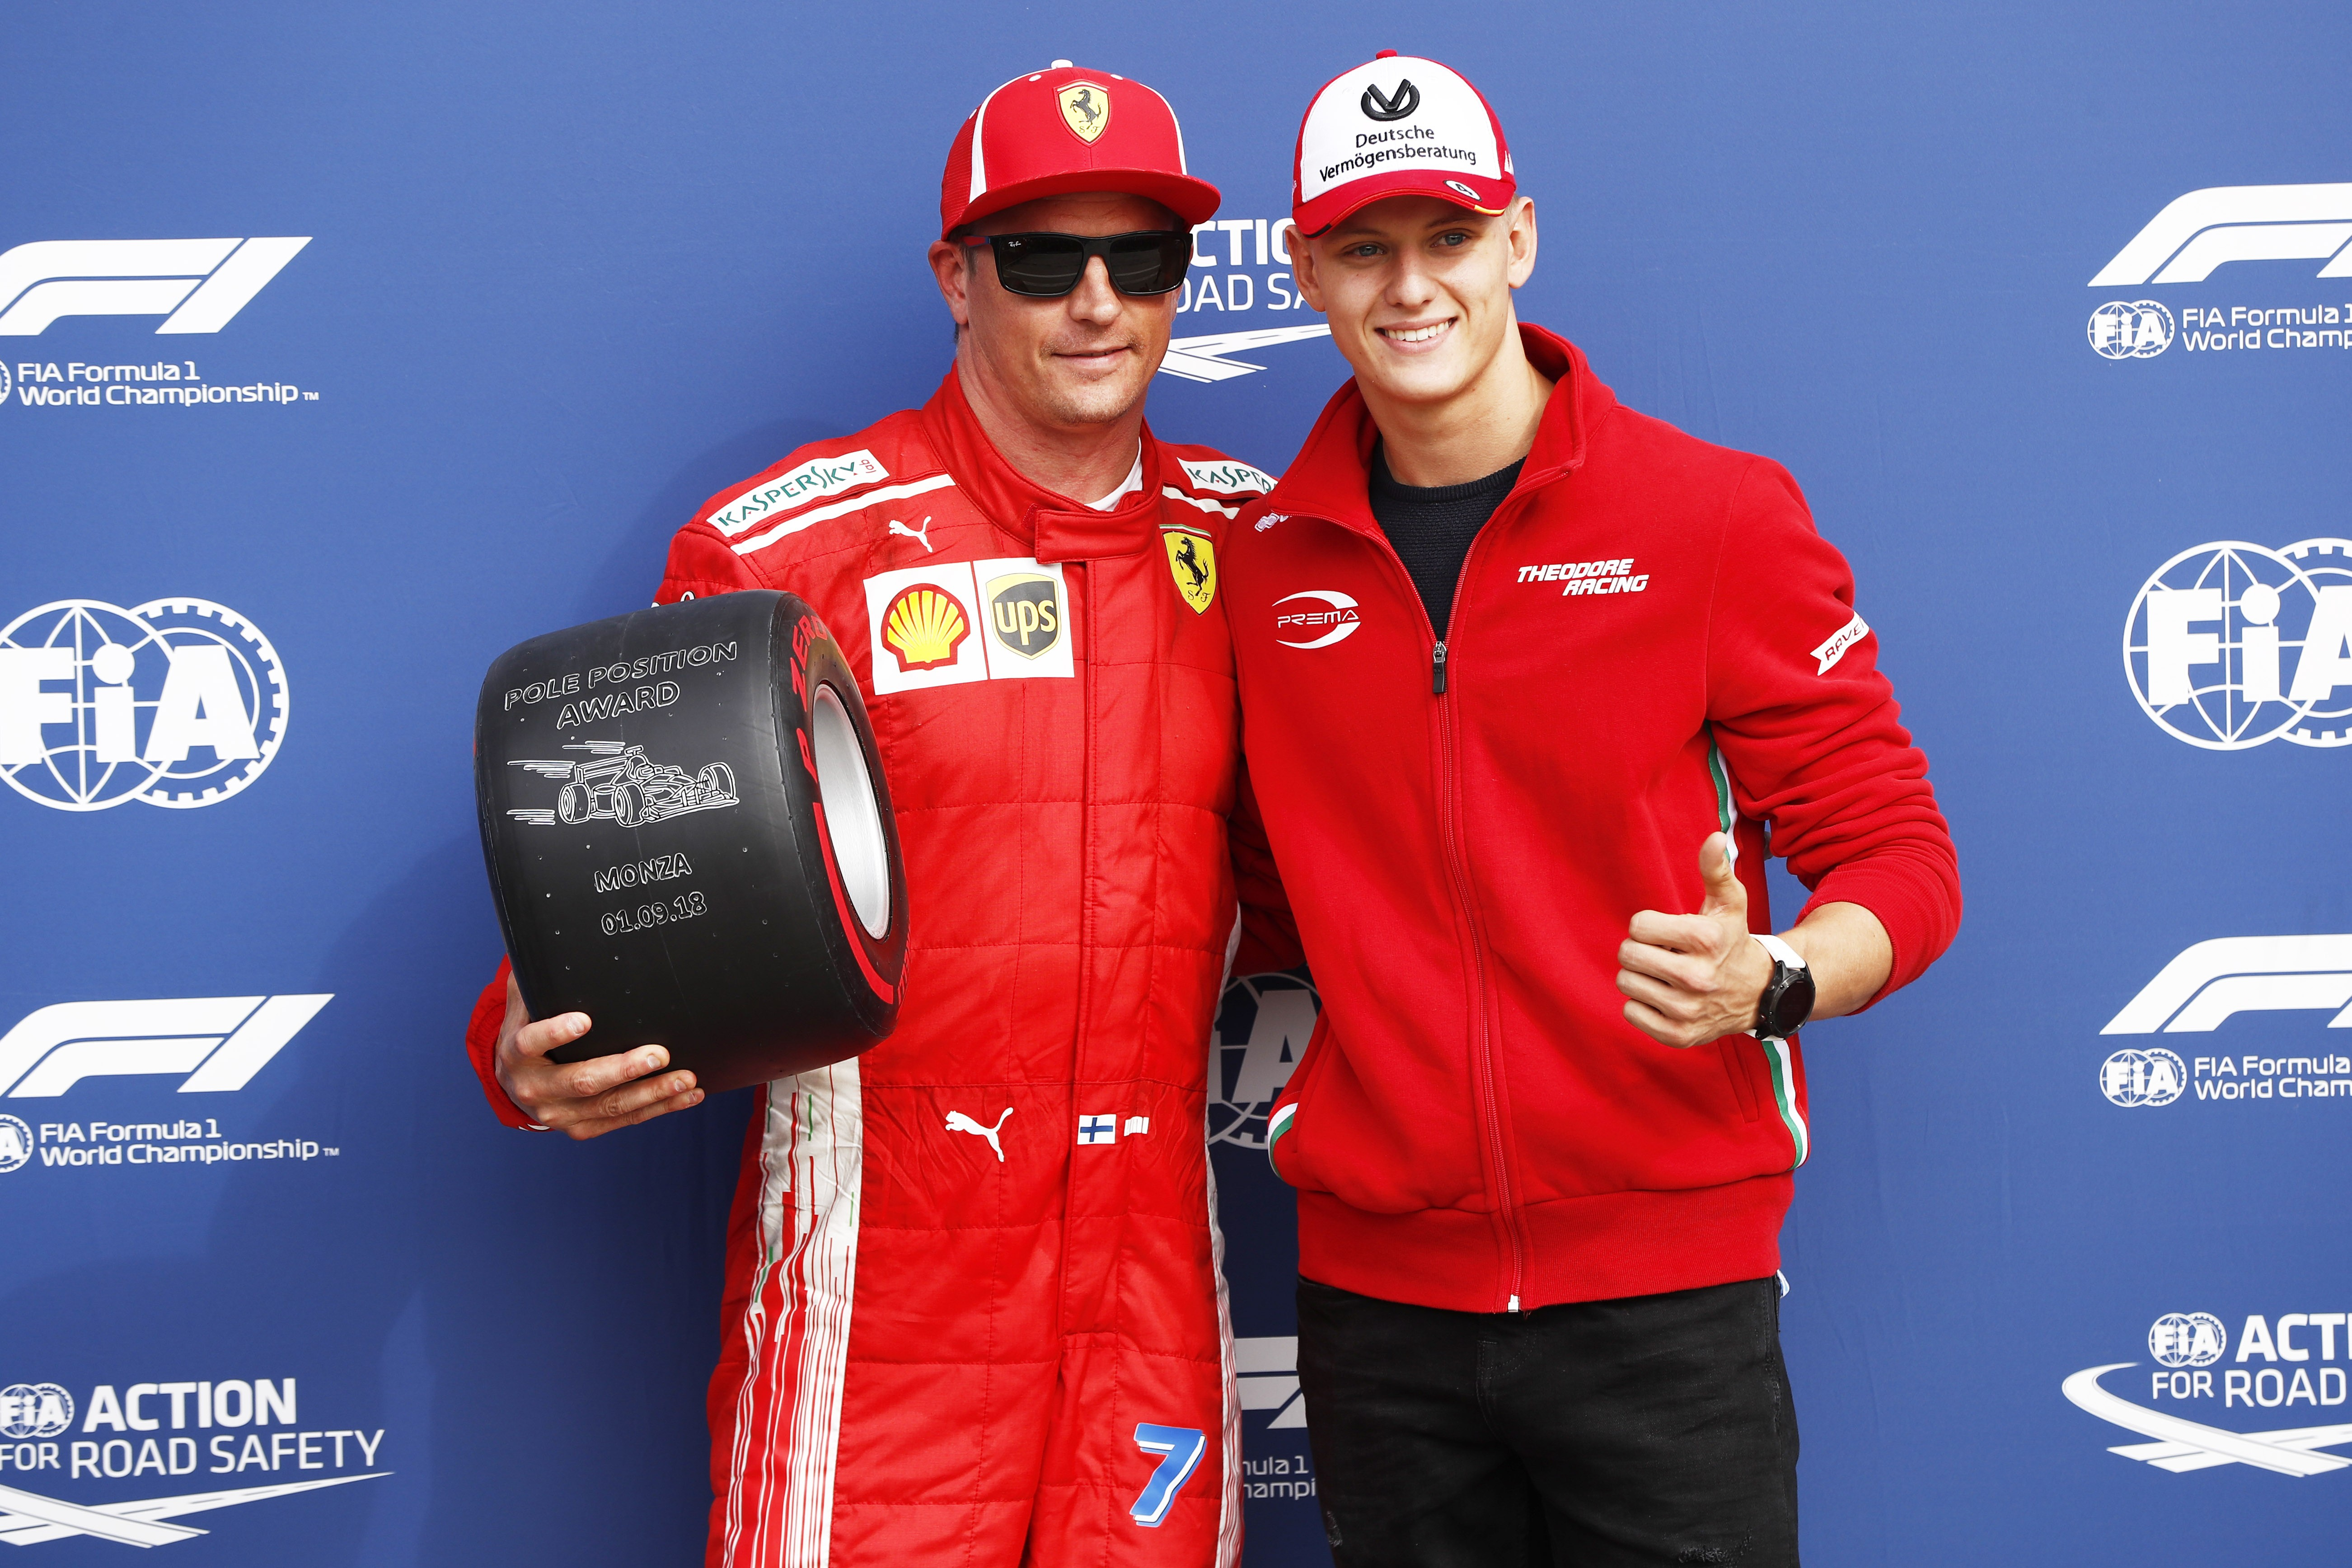 Pole sitter Kimi Raikkonen with Mick Schumacher